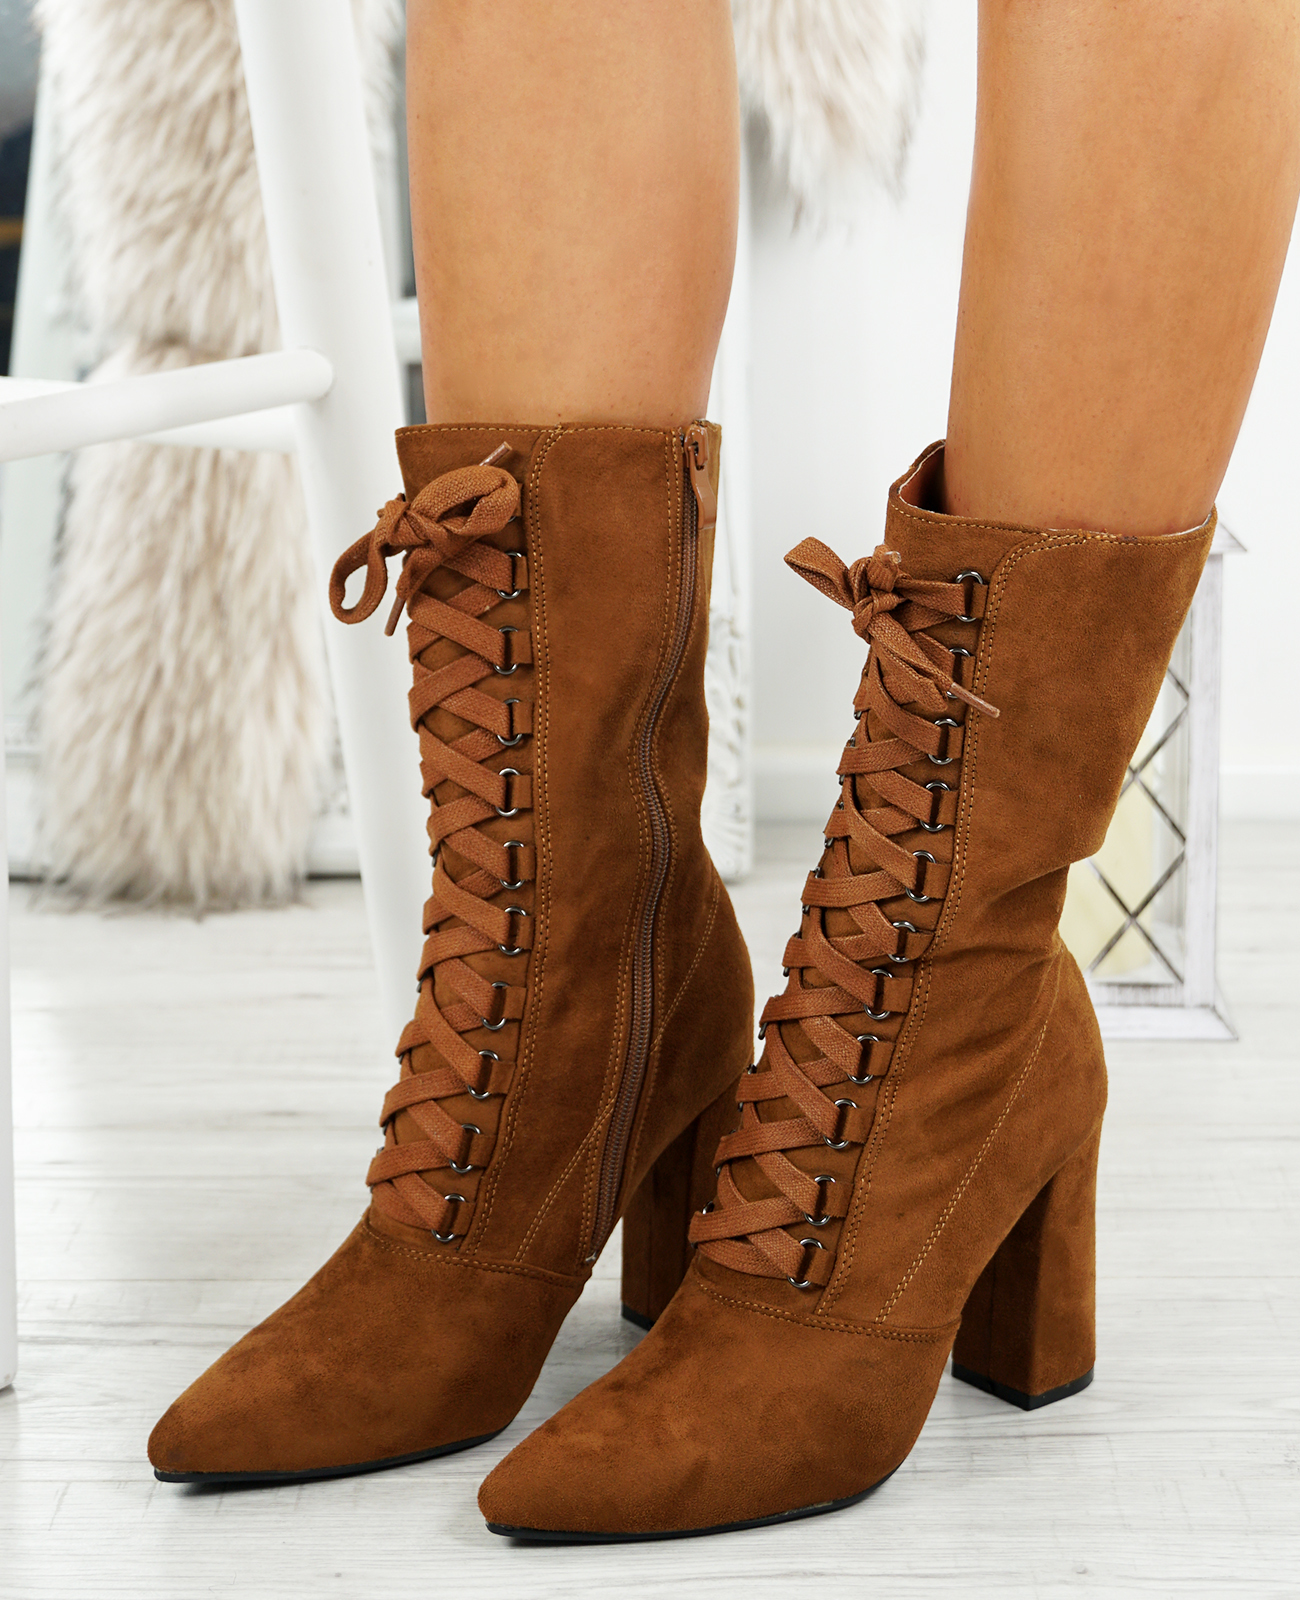 LADIES-WOMENS-HIGH-TOP-ANKLE-BOOTS-SIDE-ZIP-LACE-BLOCK-HEEL-POINTED-TOE-SHOES thumbnail 13